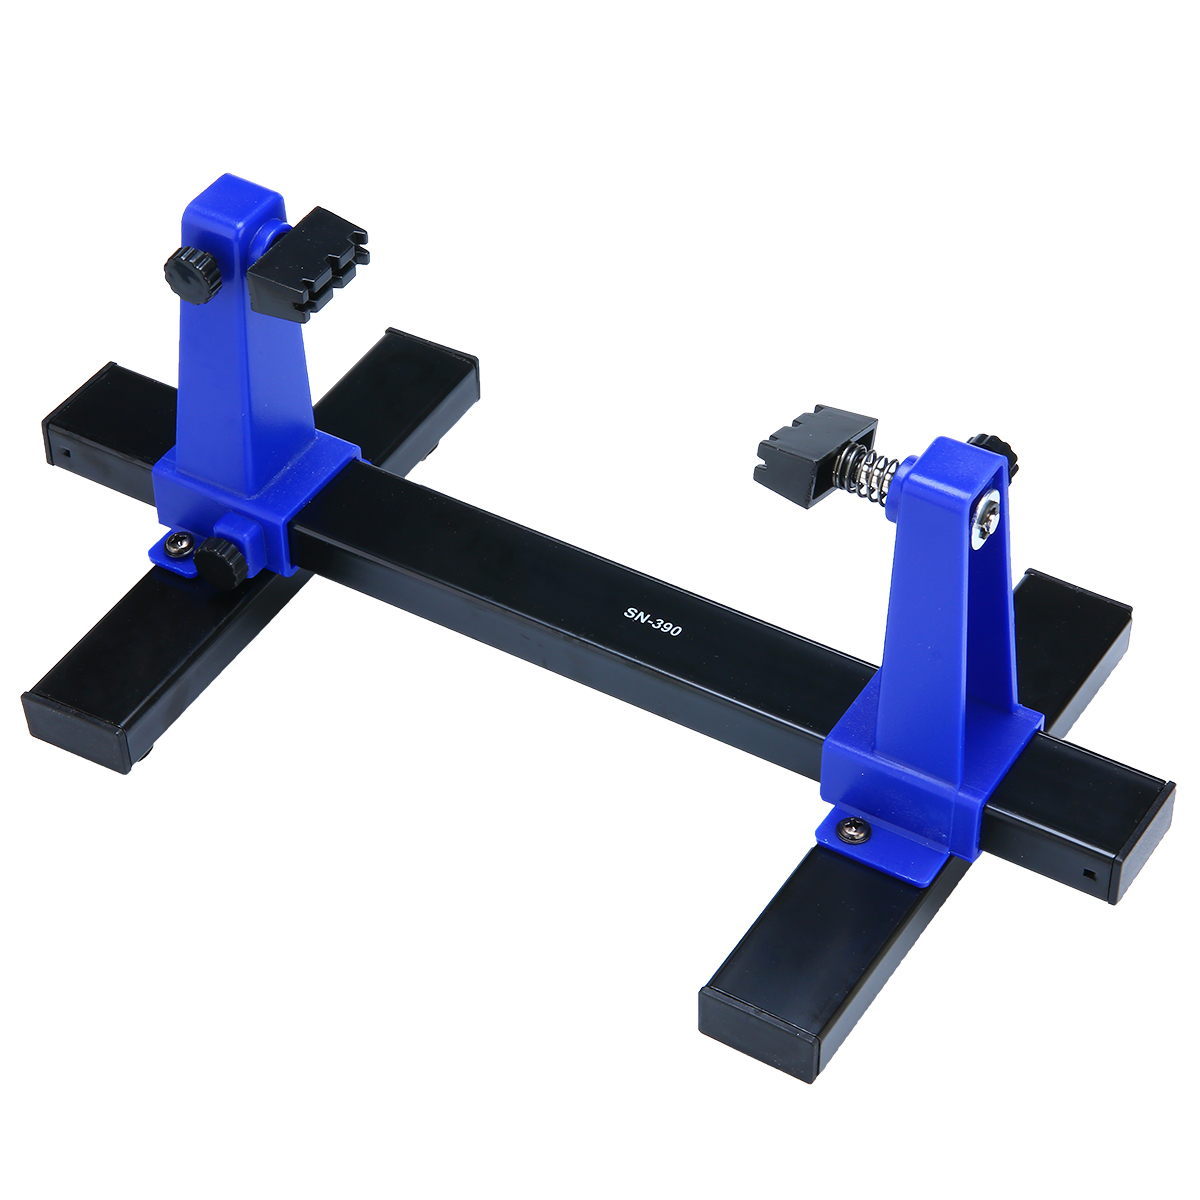 Aliexpresscom Sn 390 Pcb Holder Printed Circuit Board Jig Fixture Repair 1x Soldering Assembly Clamp Adjustable For And Desoldering Rework